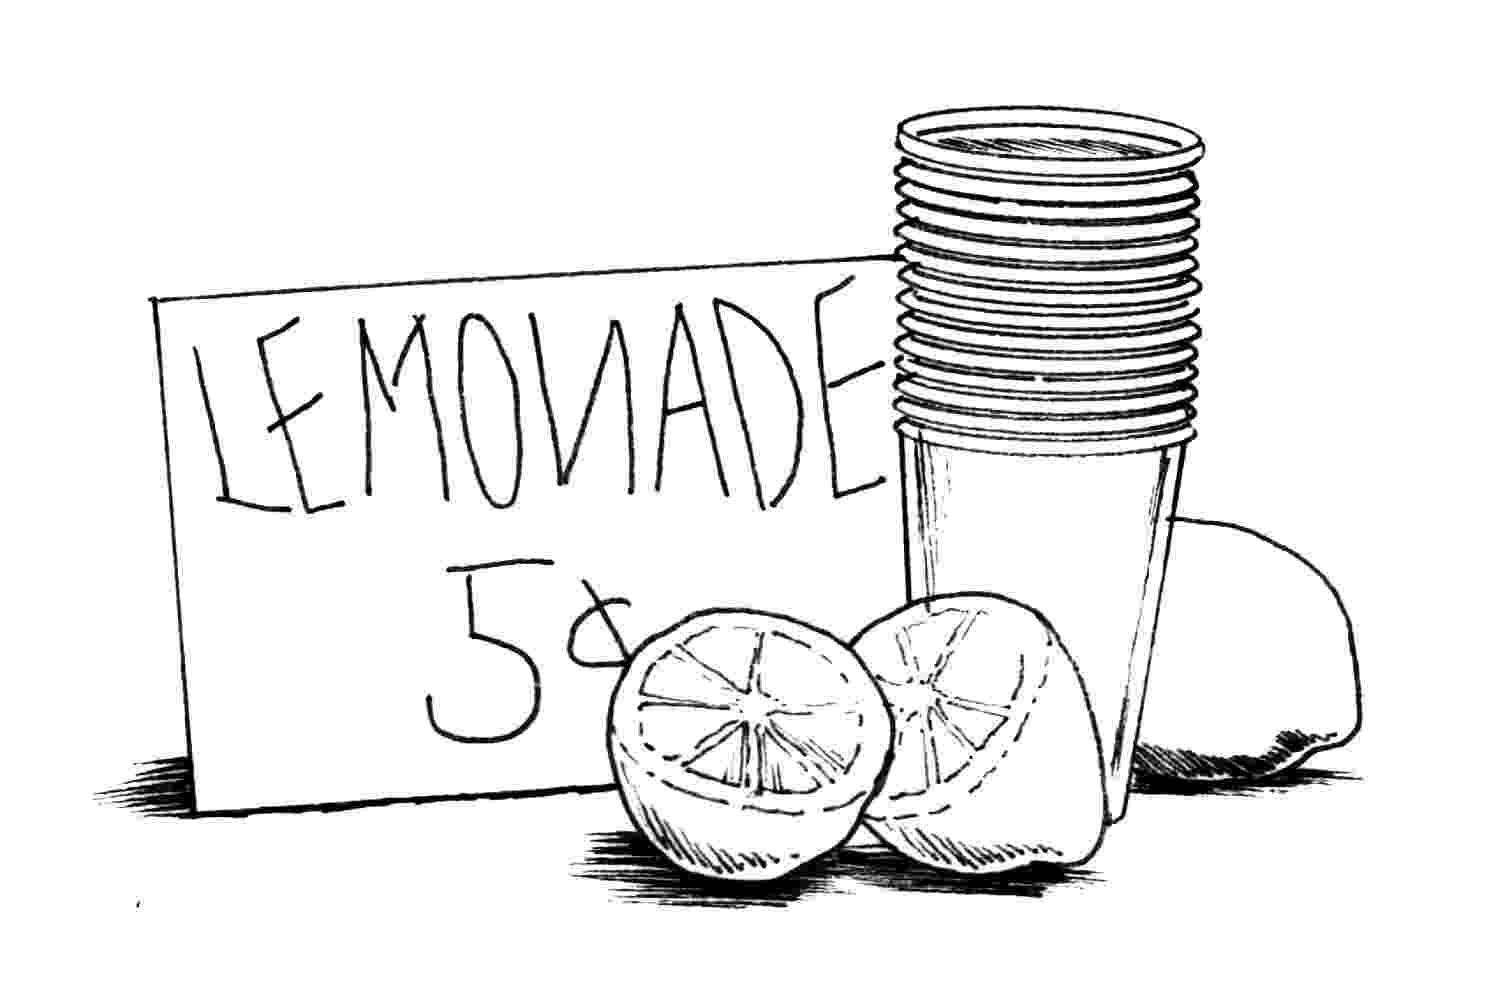 lemonade coloring page lemonade coloring pages with ice free printable coloring coloring lemonade page